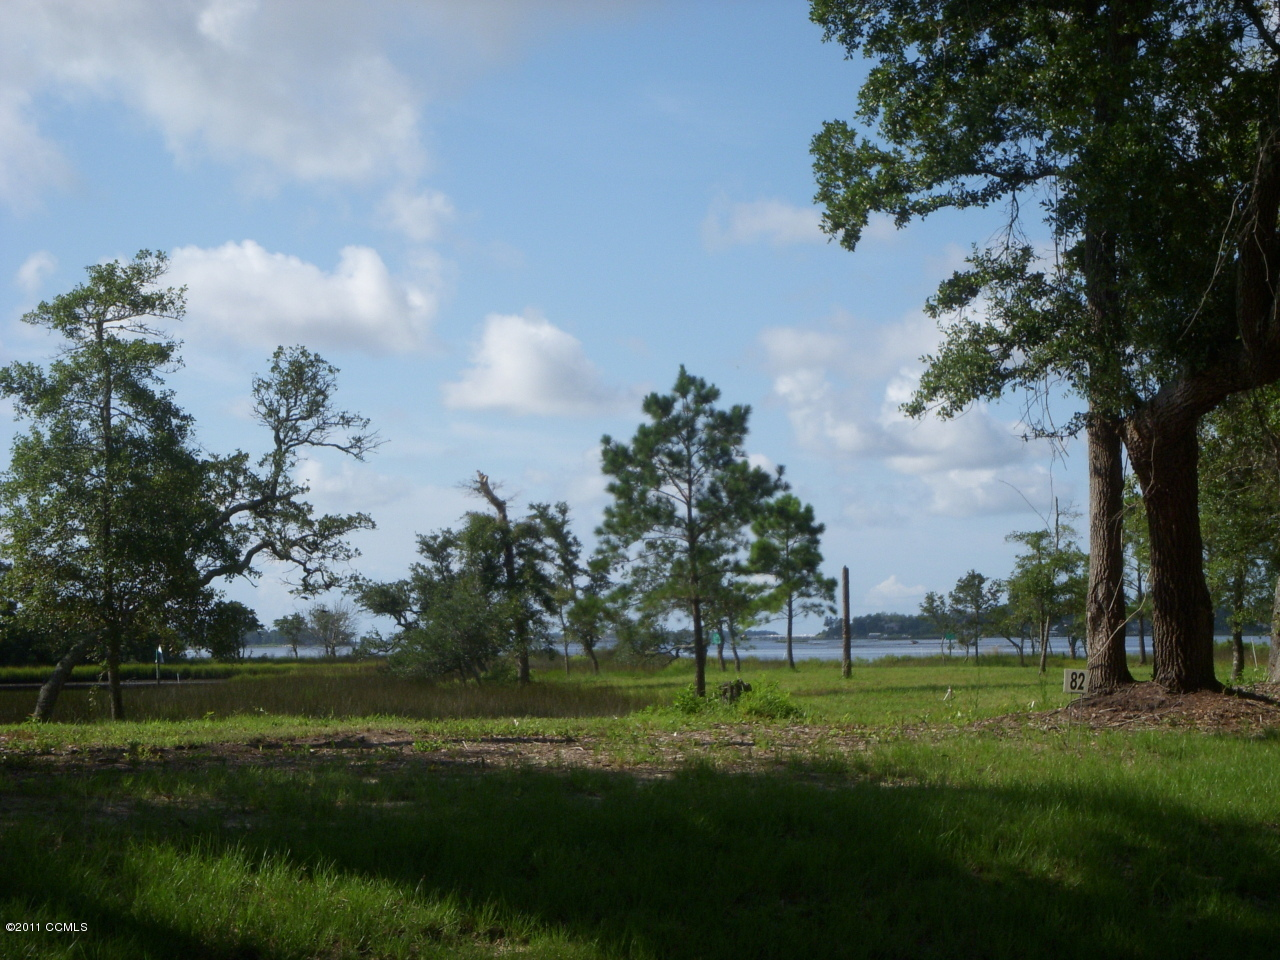 LOT PRICE REDUCED Great construction lot in Bluewater Cove. Gated community with clubhouse,pool,day dock and boat ramp. One of few subdivisions that offer water access. Great place to live.